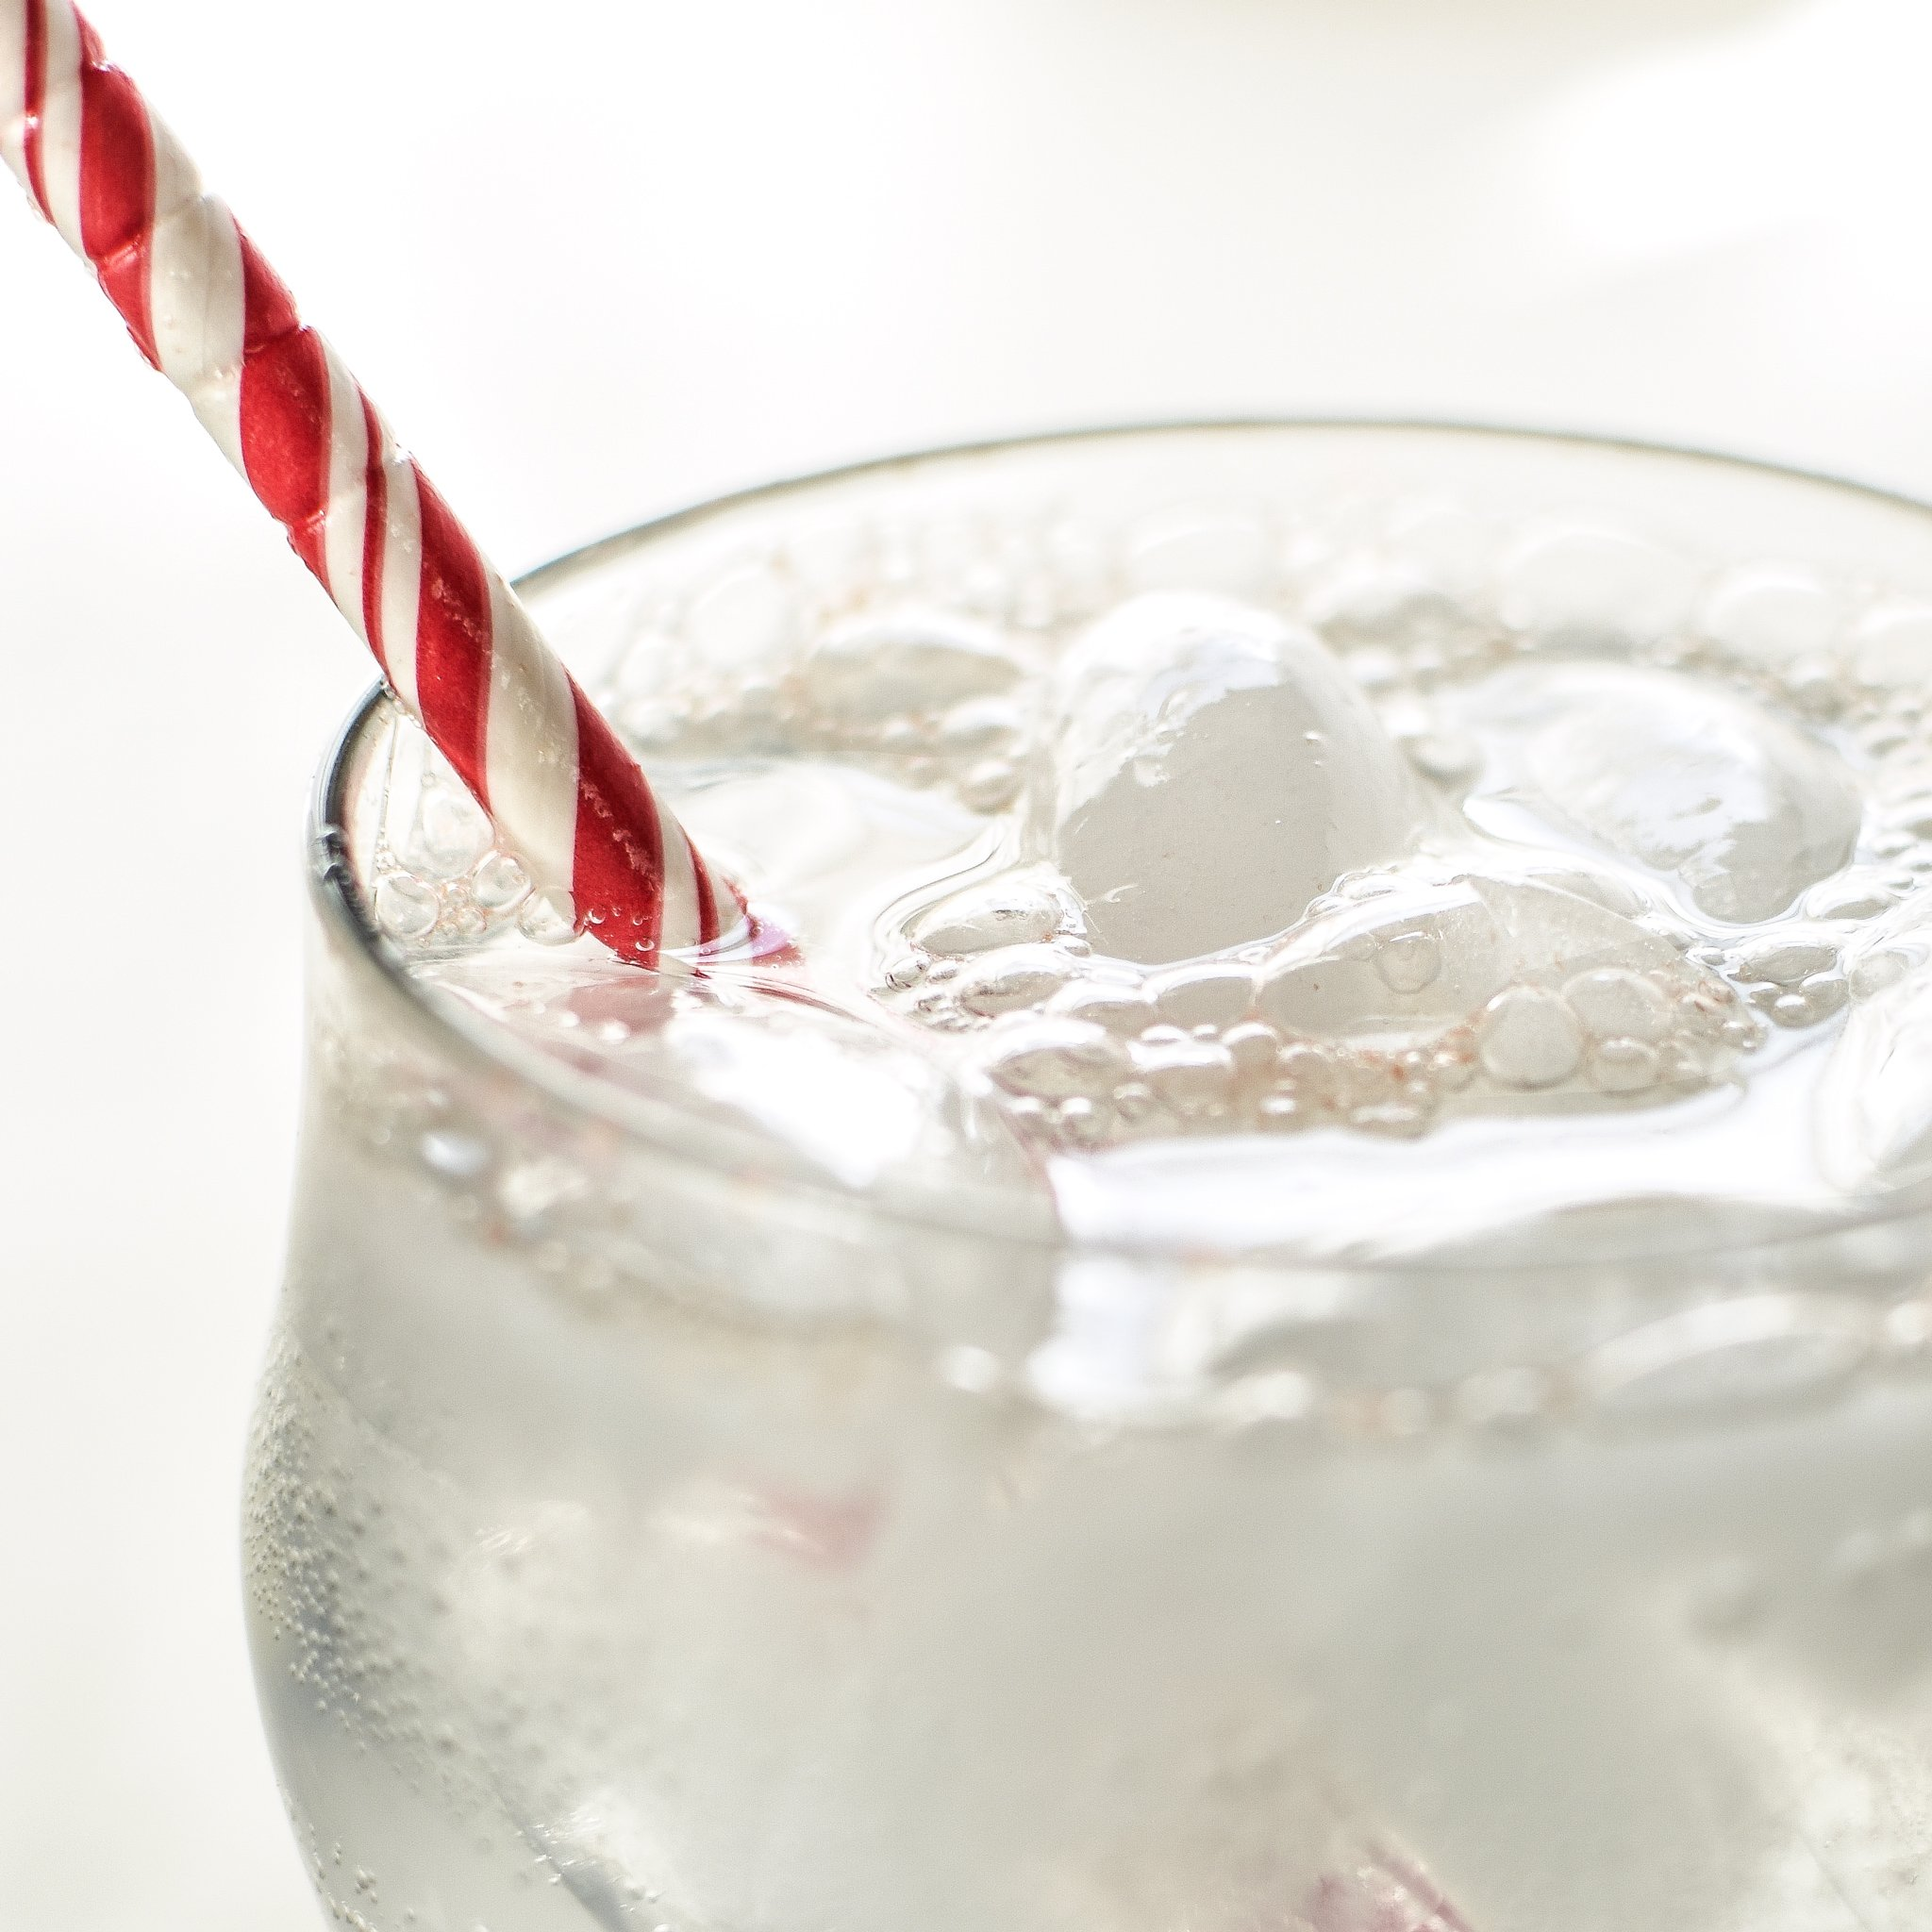 A cold fizzy beverage with lots of bubbles at the top and a red and white candy cane striped straw. Homemade LaCroix